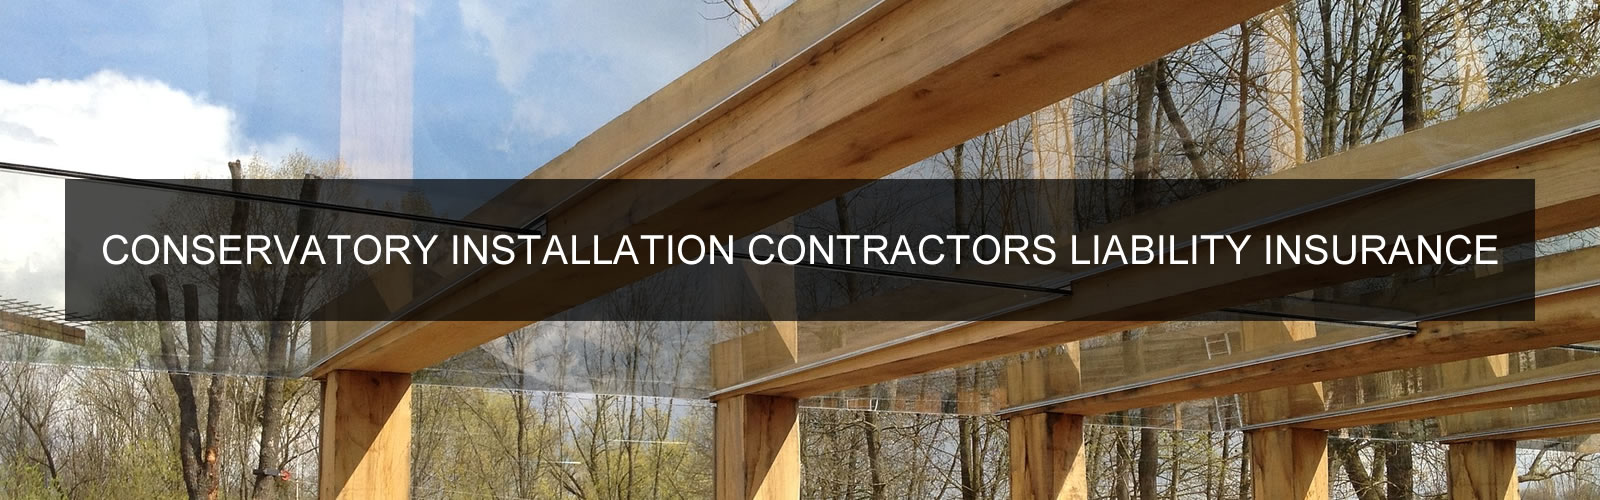 CONSERVATORY INSTALLATION CONTRACTORS LIABILITY INSURANCE